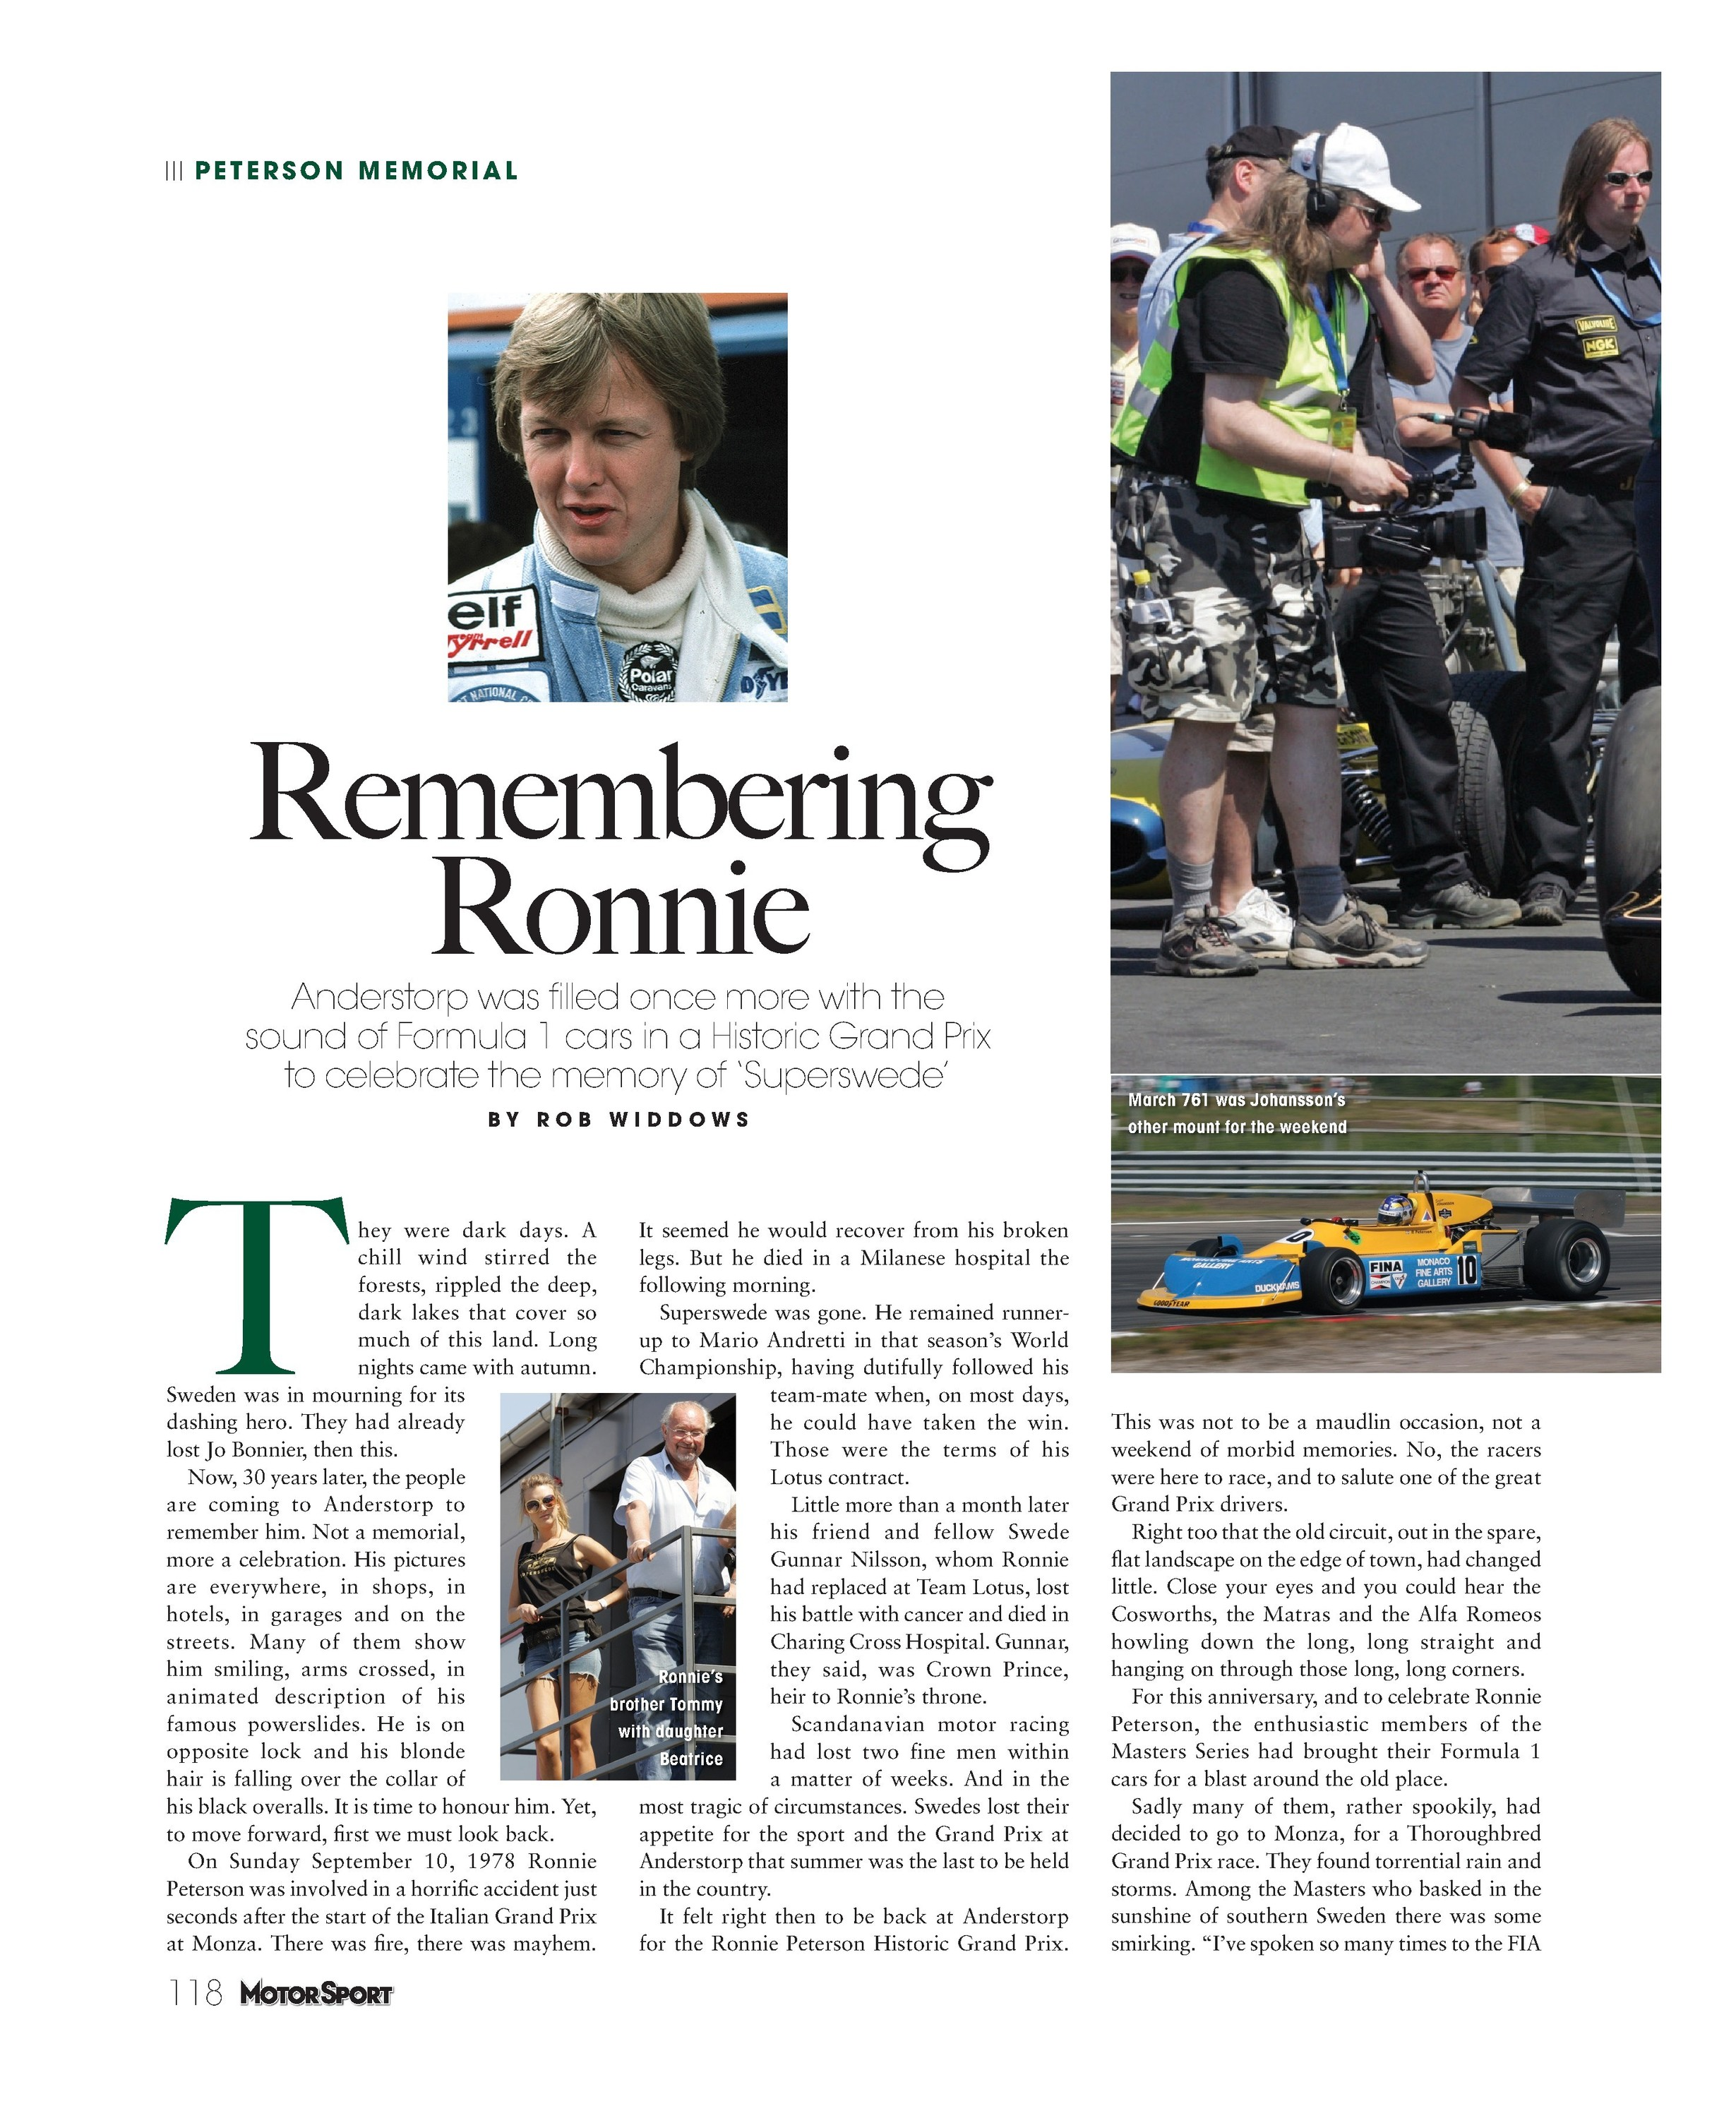 Remembering Ronnie image